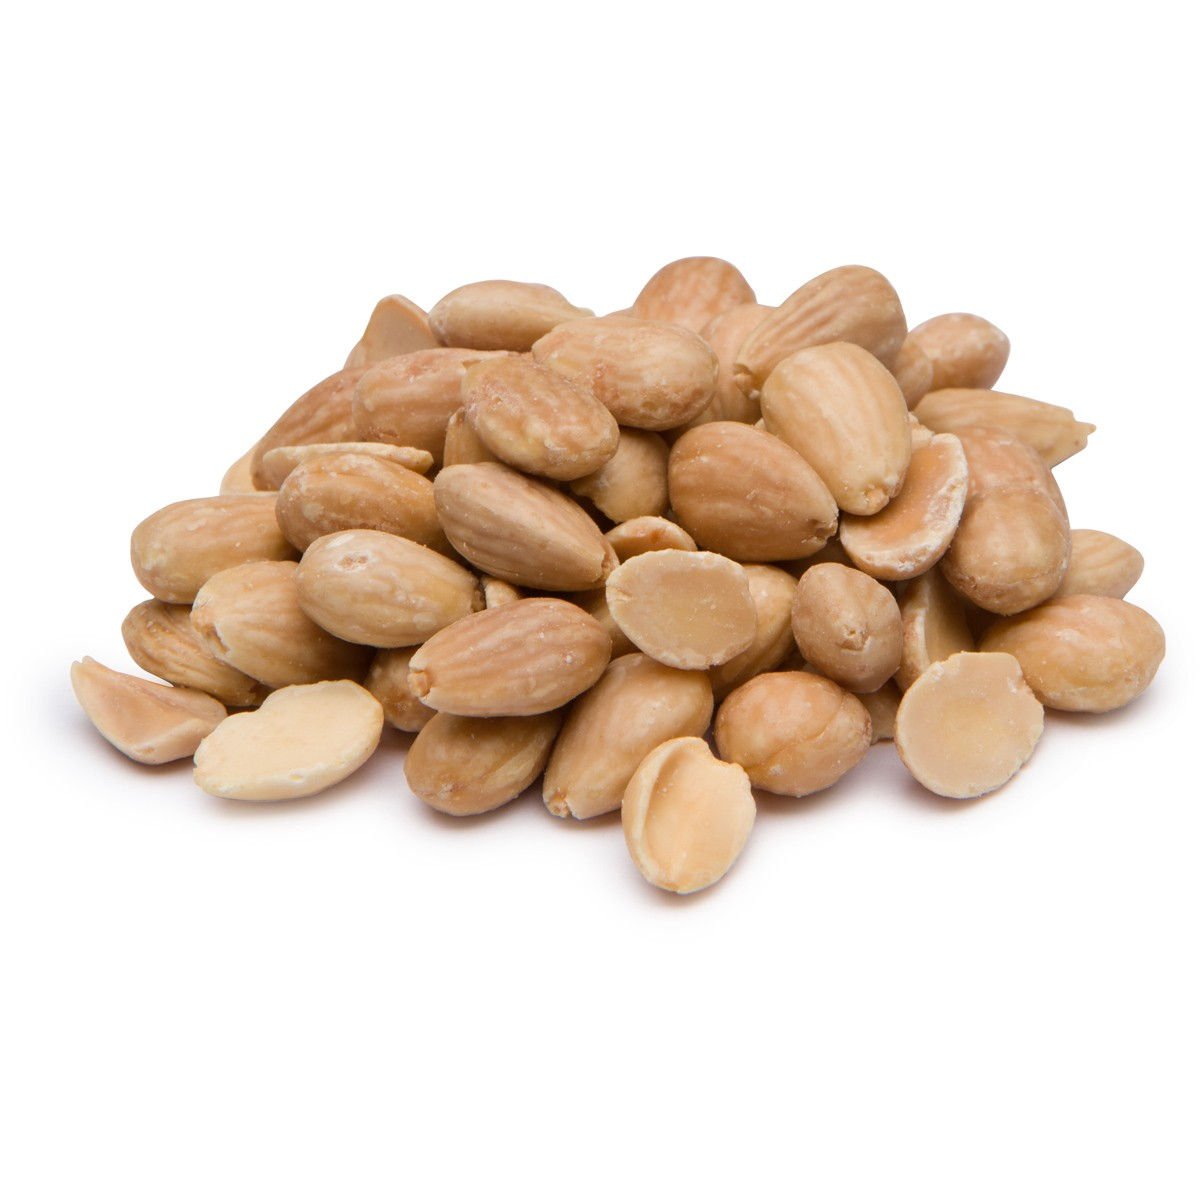 Dry Roasted Blanched Almonds